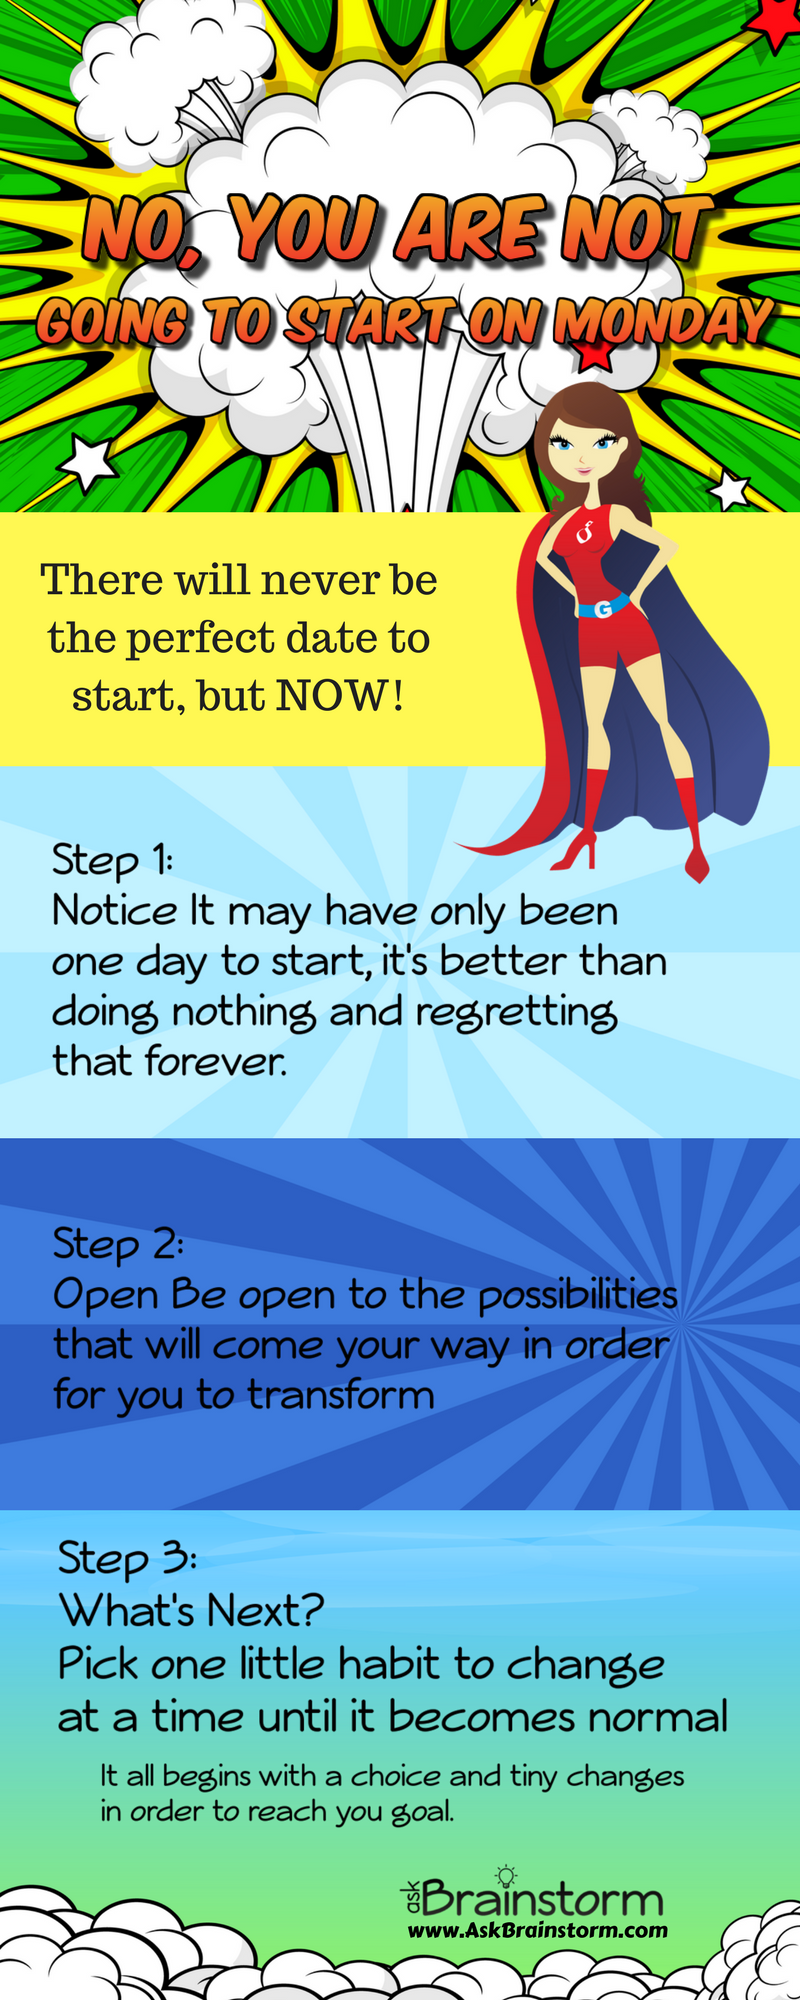 No, You Are Not Going To Start On Monday! : How To Stop Waiting For The Right Time To Start & Do It NOW! Infographic. Ask Brainstorm